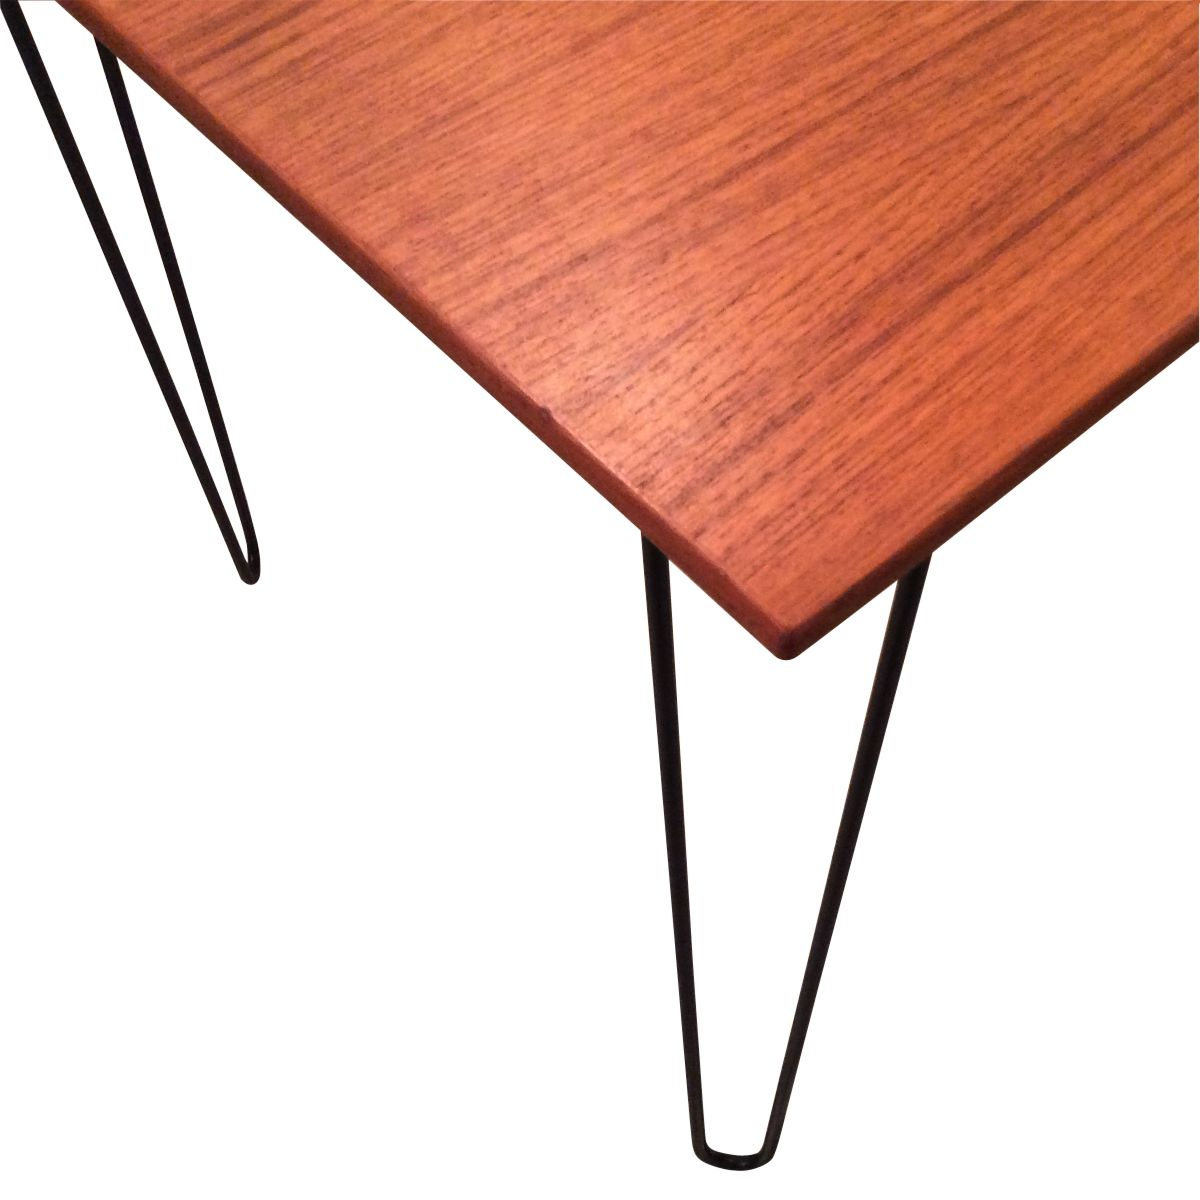 Dining Table with Hairpin Legs 1960s for sale at Pamono : dining table with hairpin legs 1960s 6 from www.pamono.co.uk size 1200 x 1200 jpeg 412kB